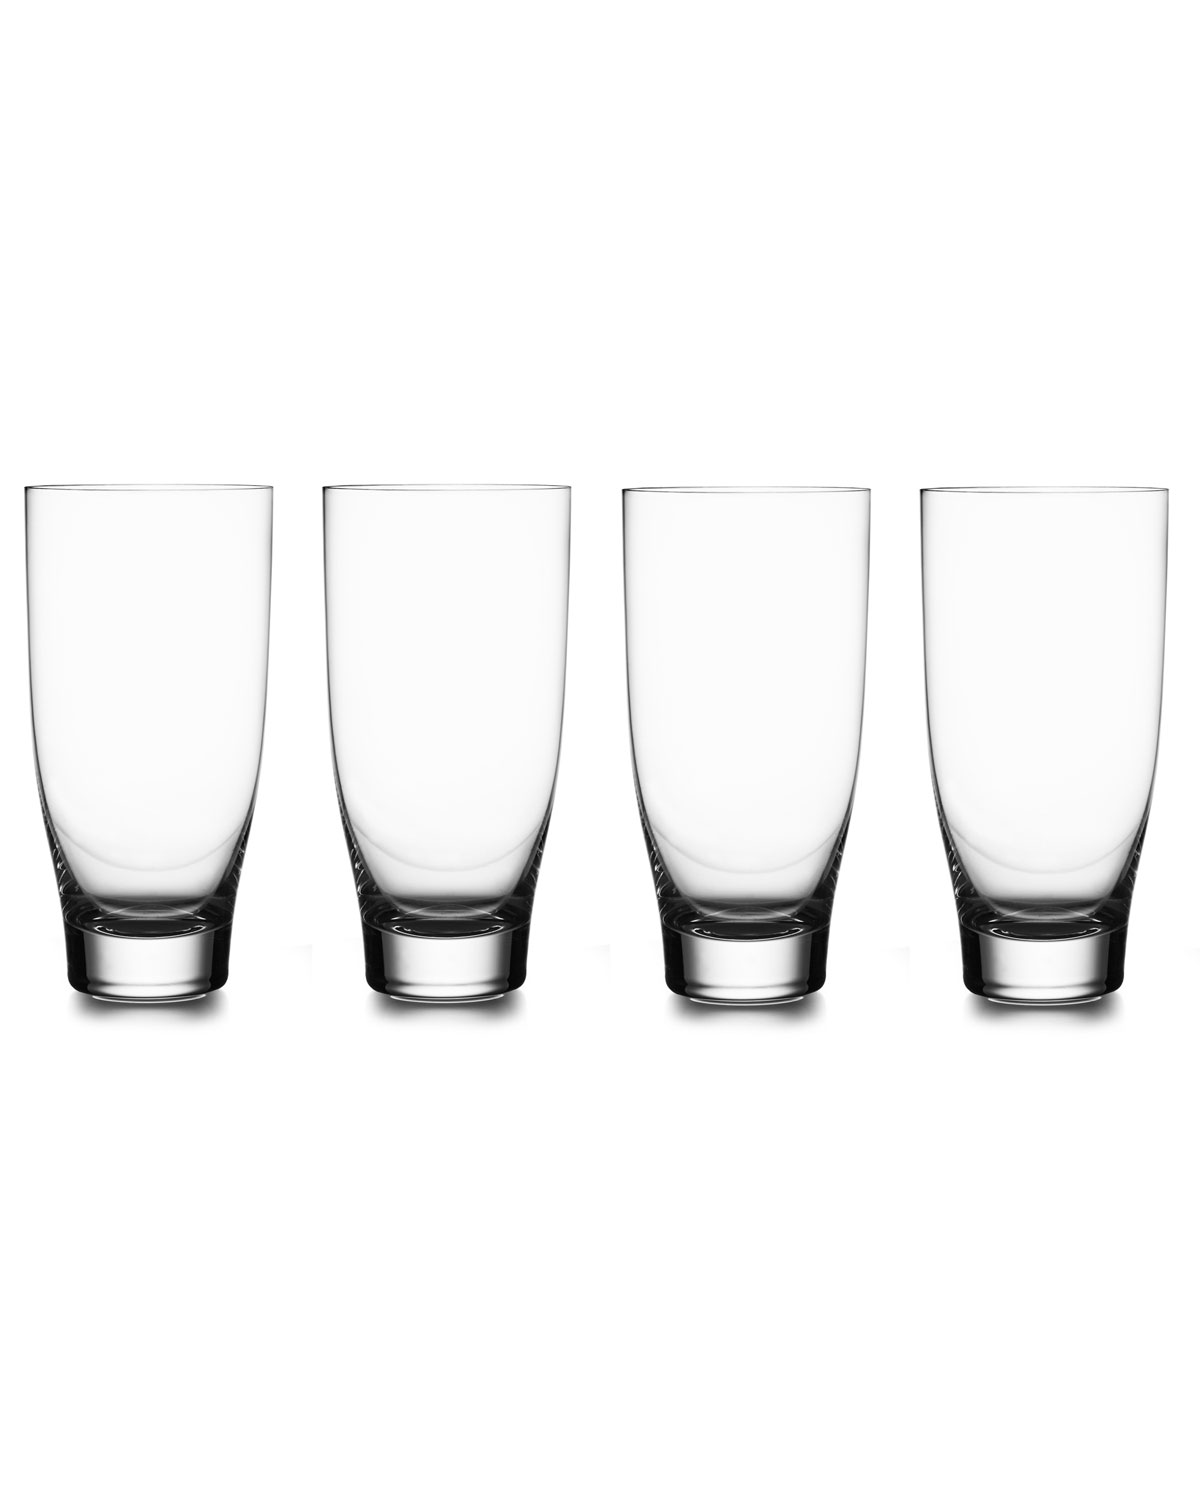 Vie Highball Glasses, Set of 4